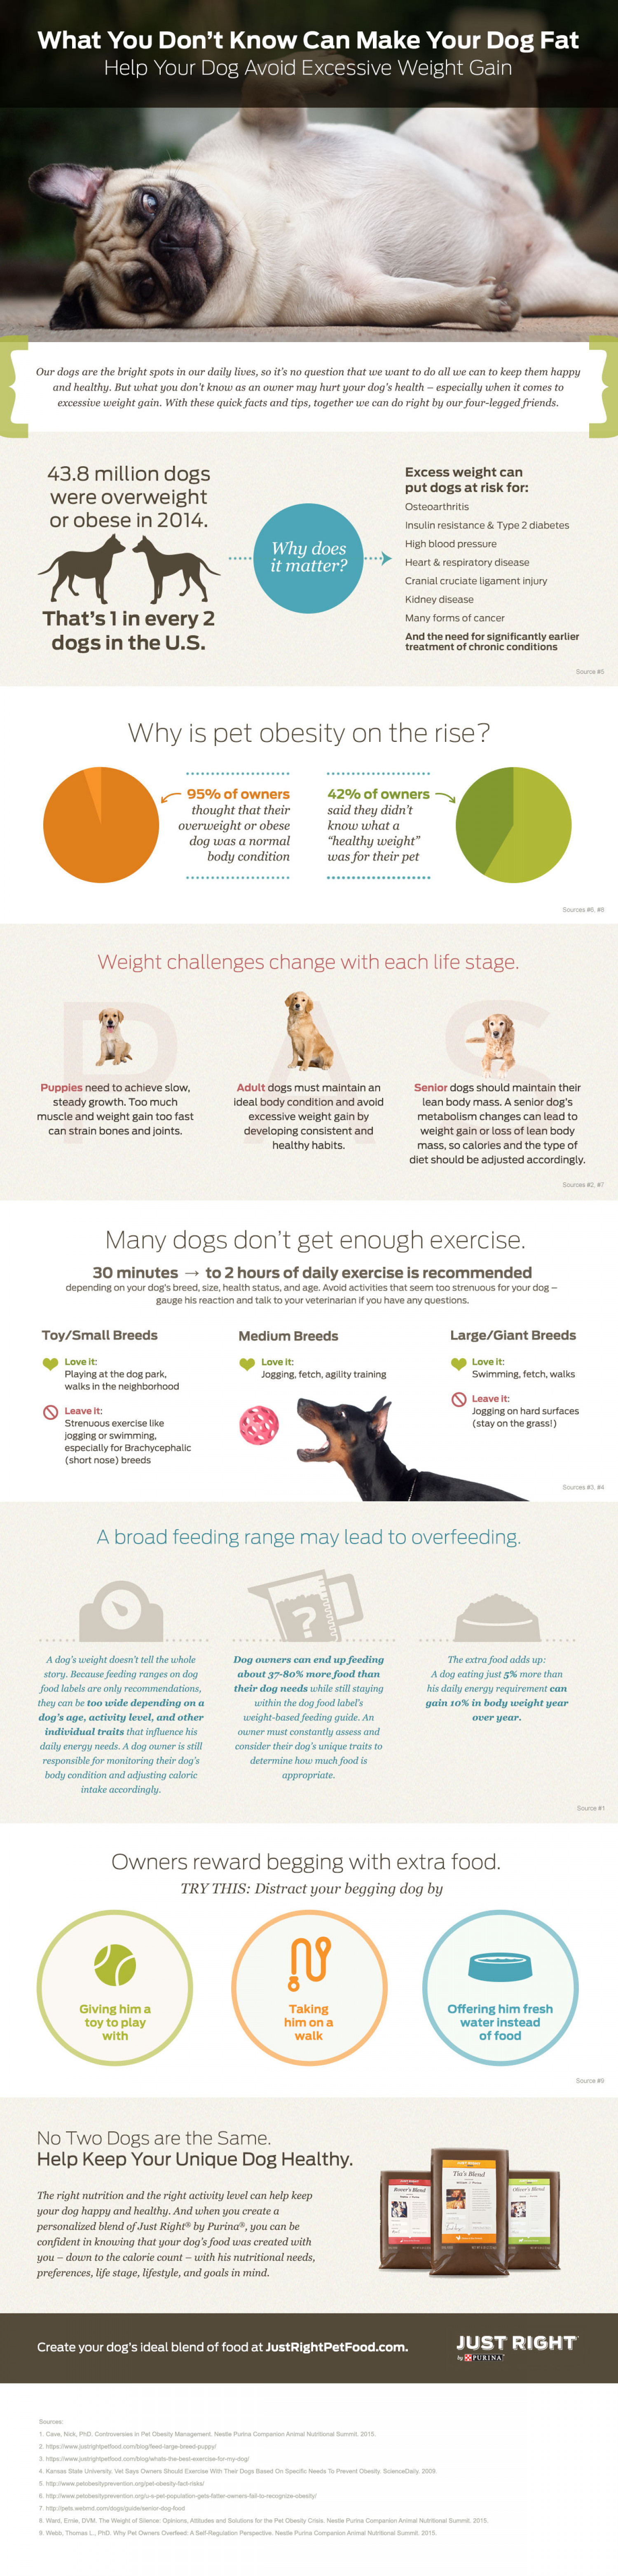 What You Don't Know Can Make Your Dog Fat Infographic